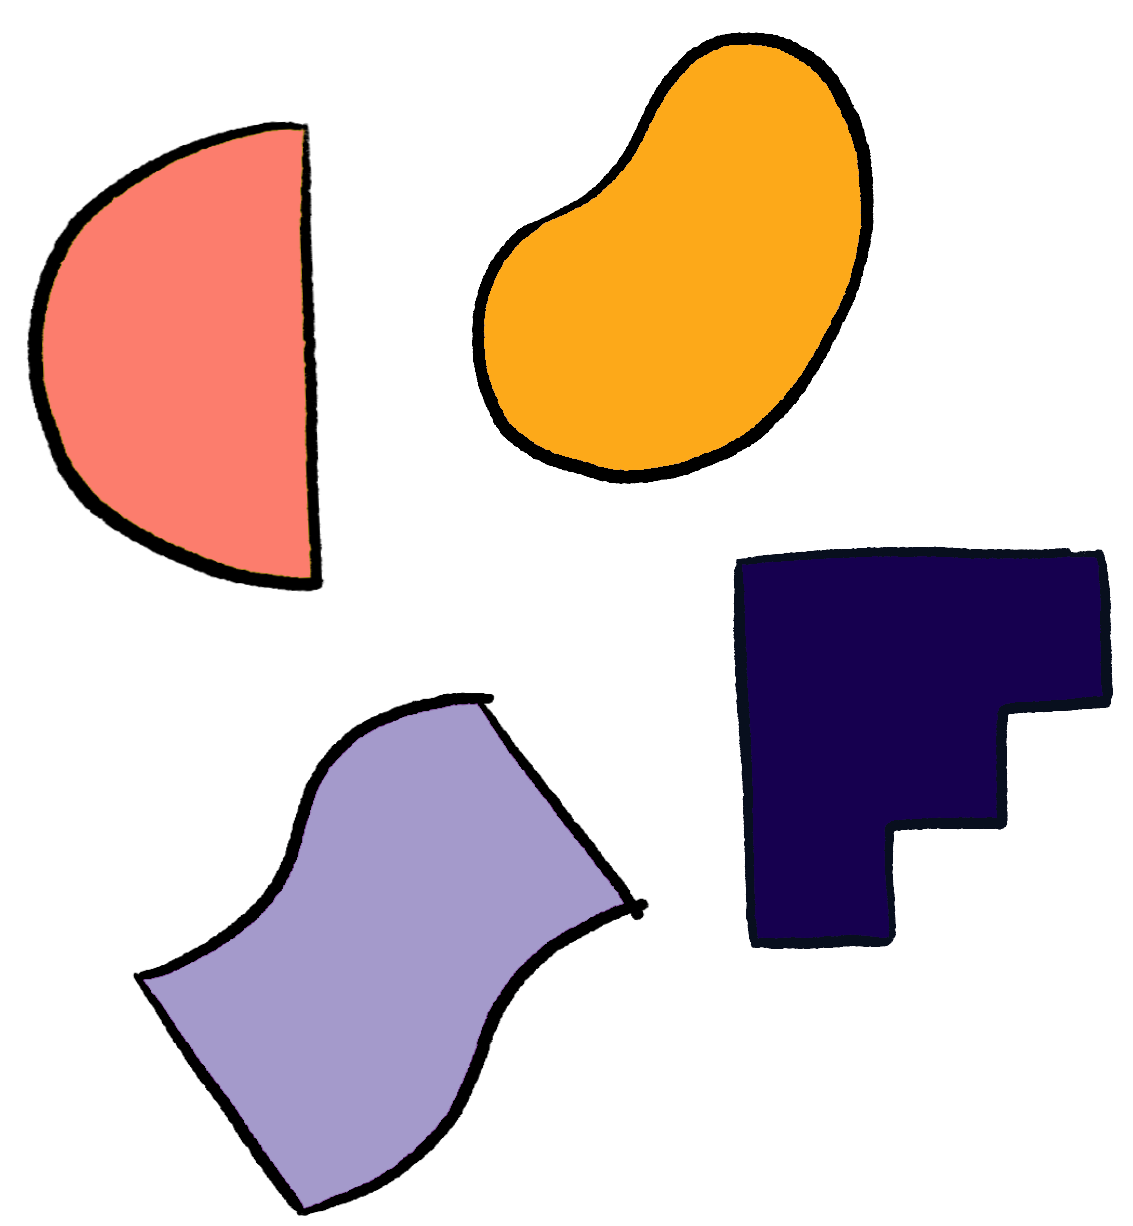 Abstract illustration of shapes